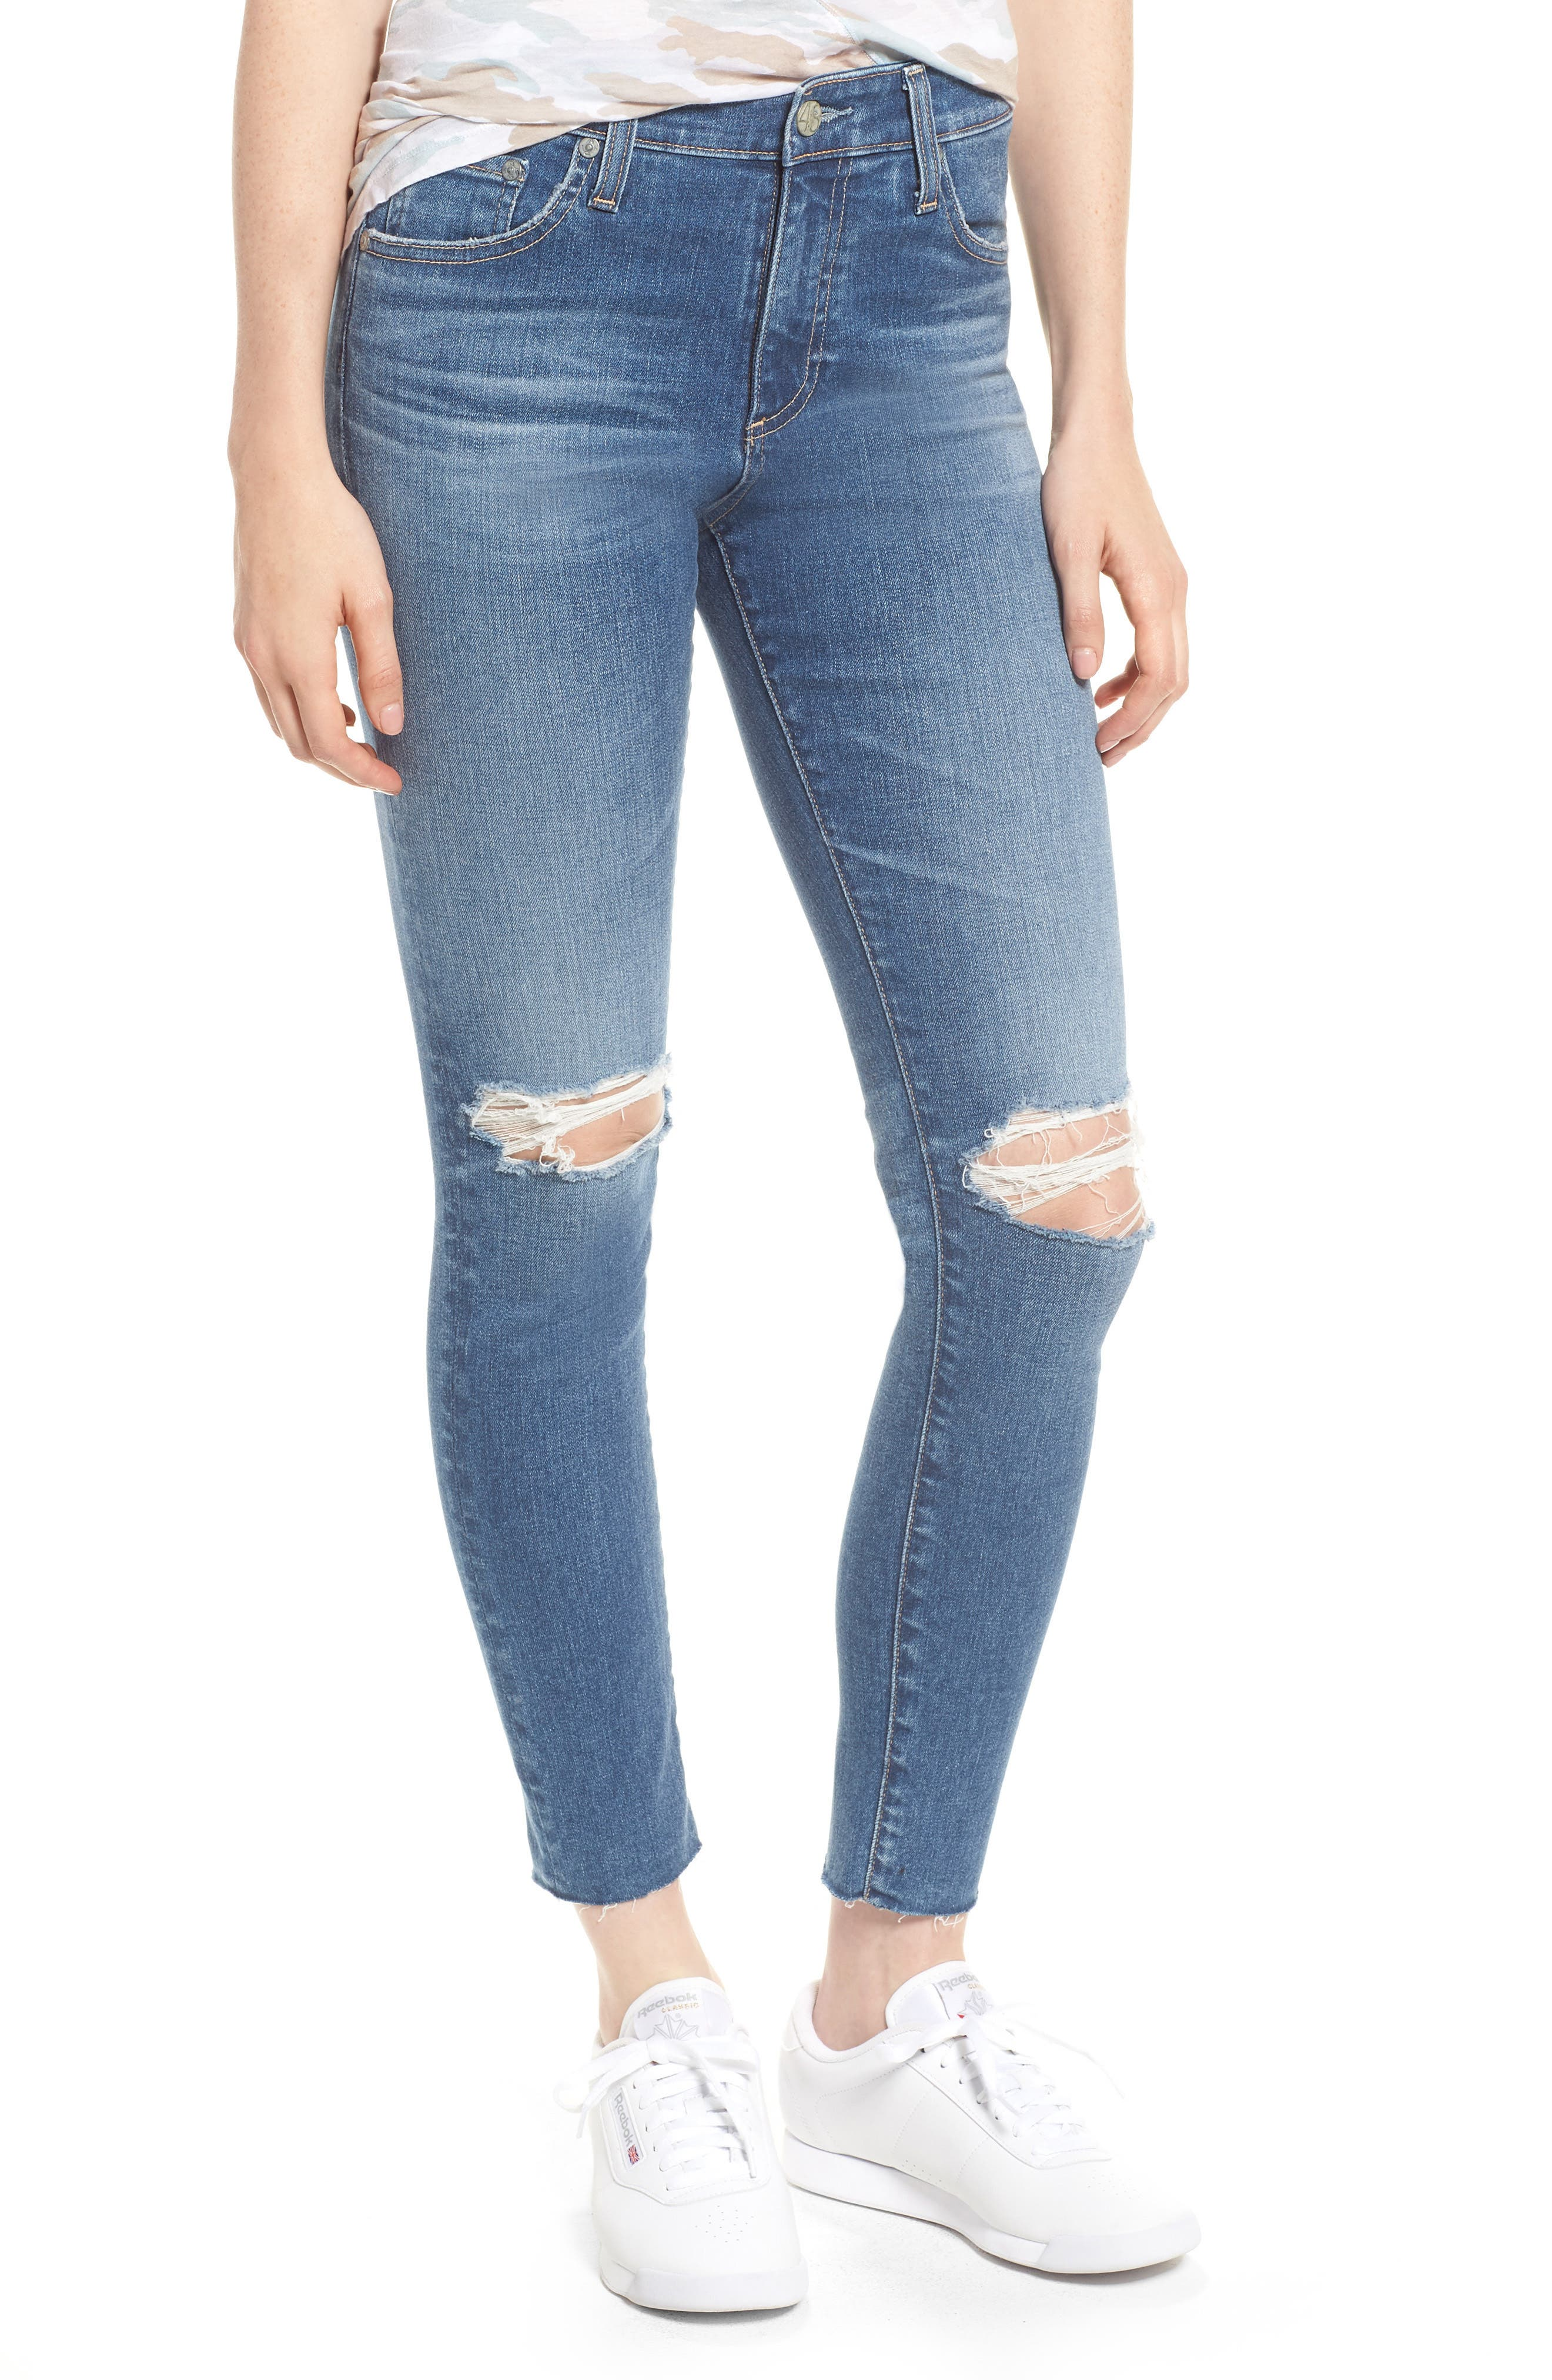 The Farrah High Waist Ankle Skinny Jeans,                         Main,                         color, 13 Year Saltwater